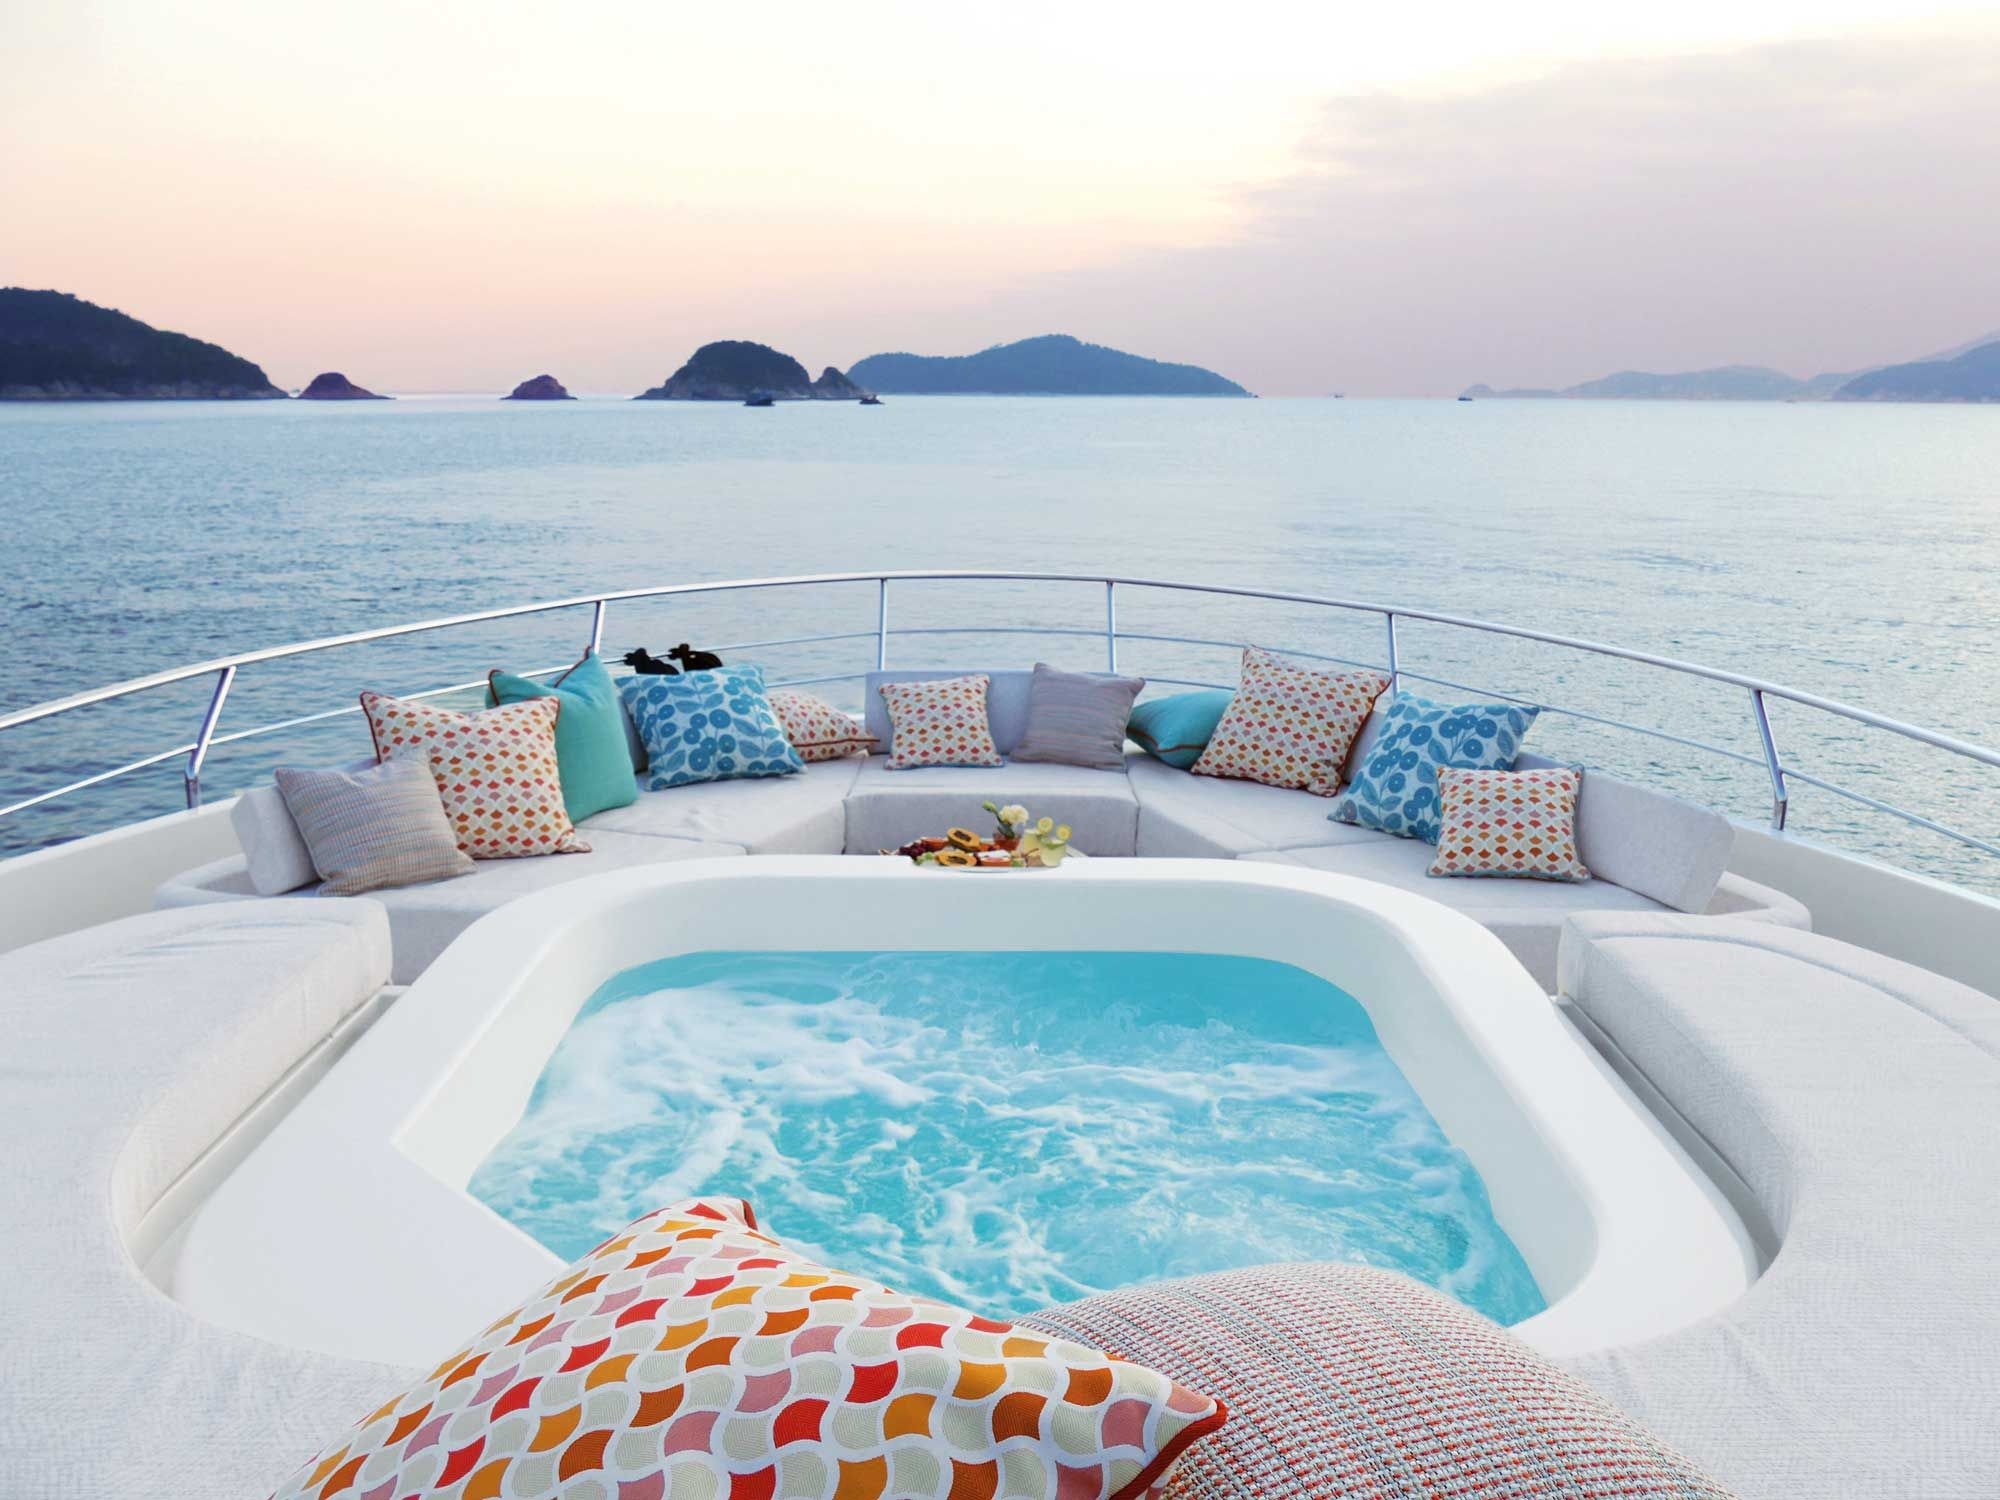 Sail Away: Inside The 32m Yacht Designed By Kelly Lo